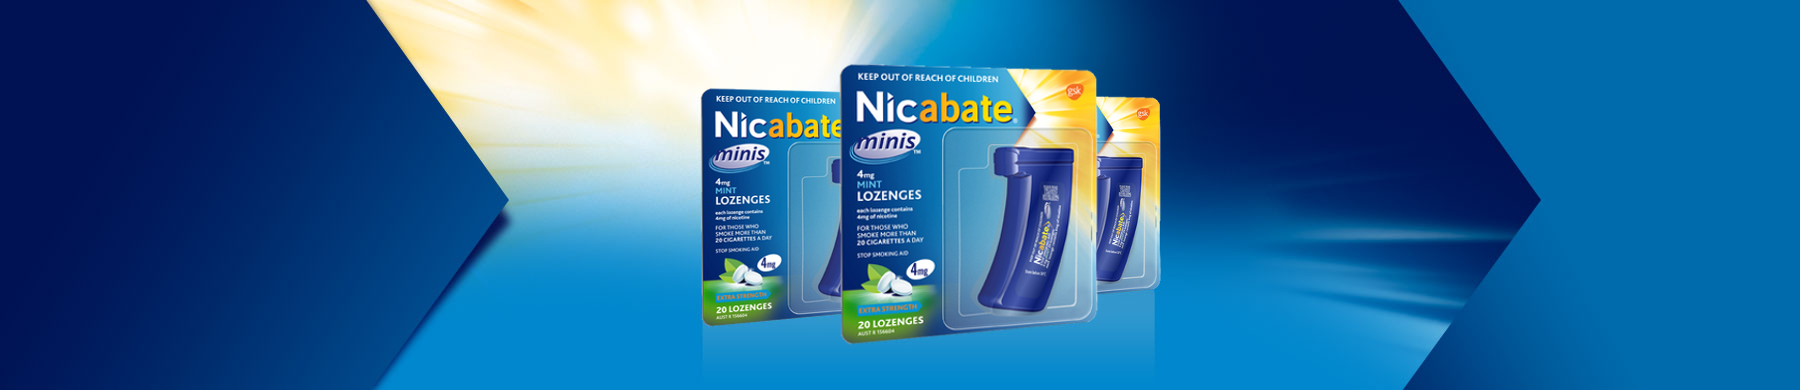 Nicabate Minis Product Header